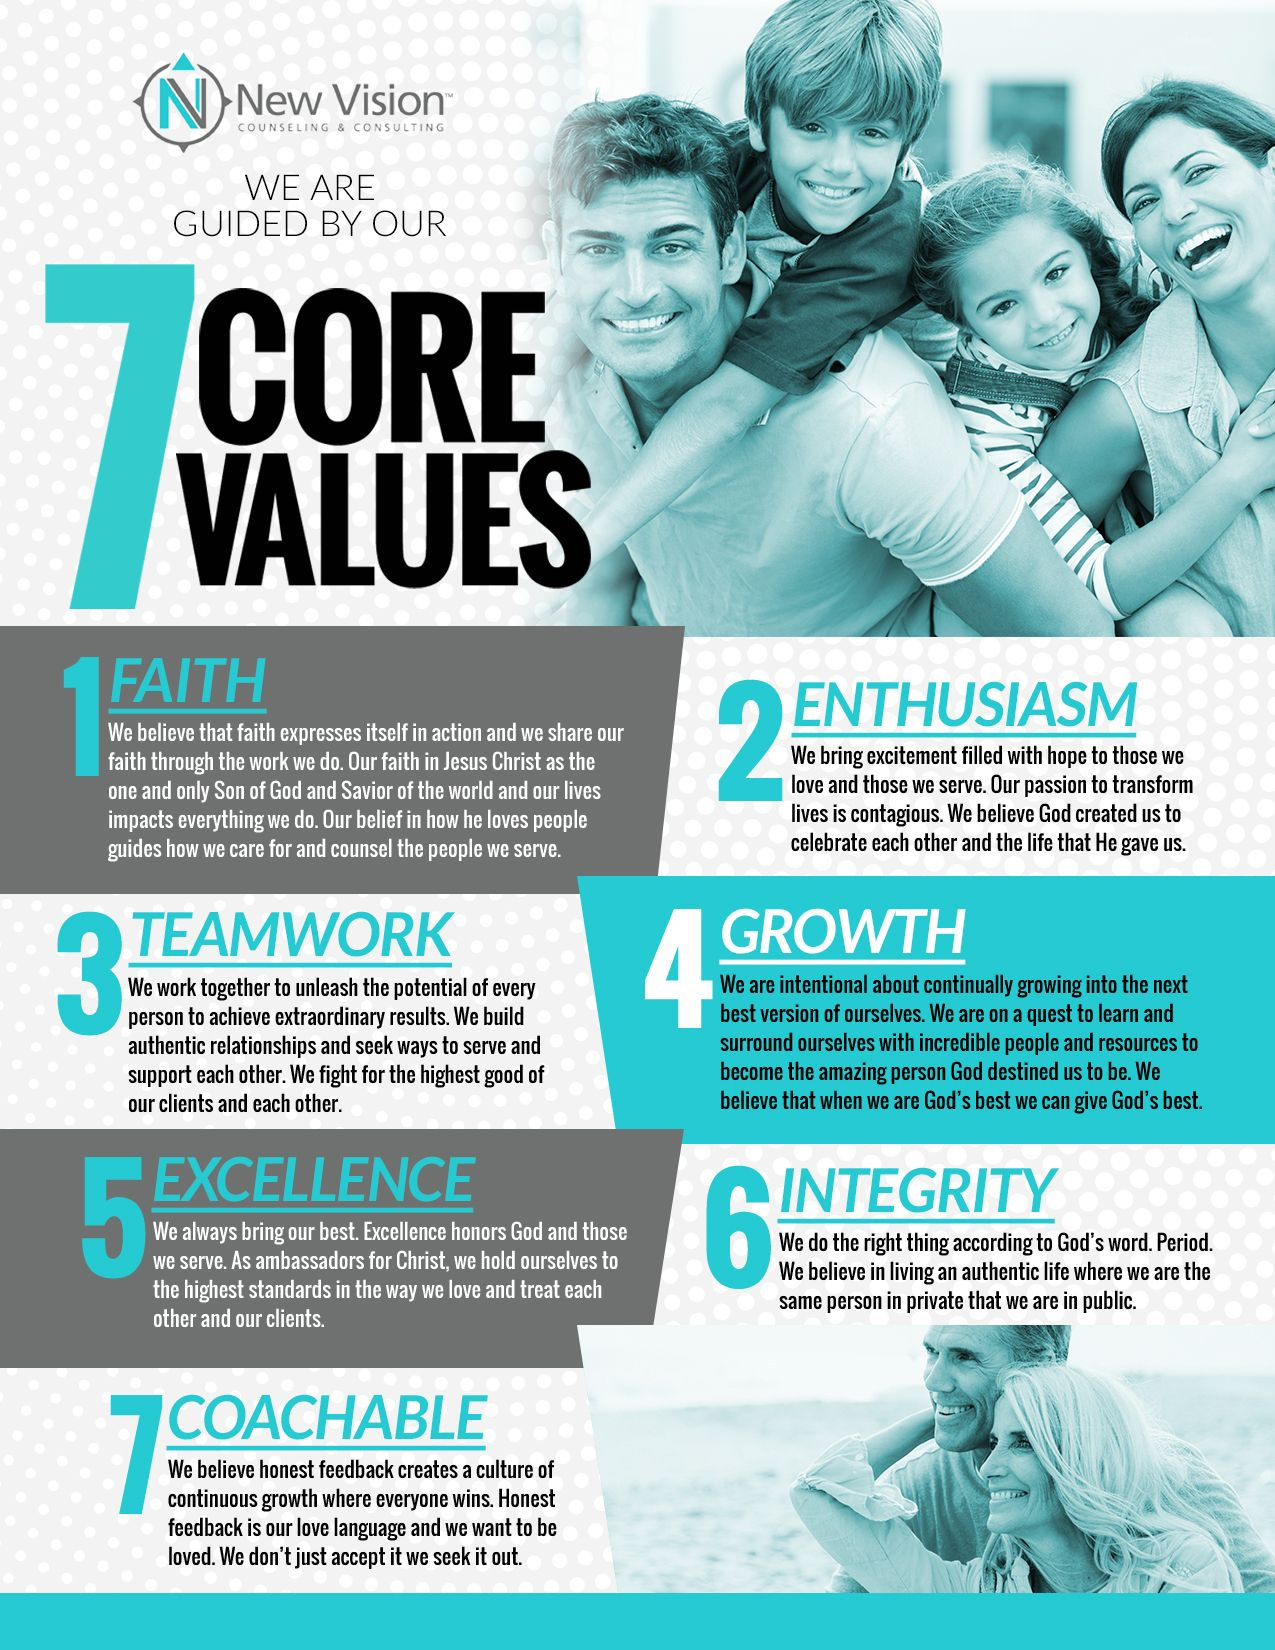 Marriage Counselor Edmond 7 Core Values NewVisionCounseling